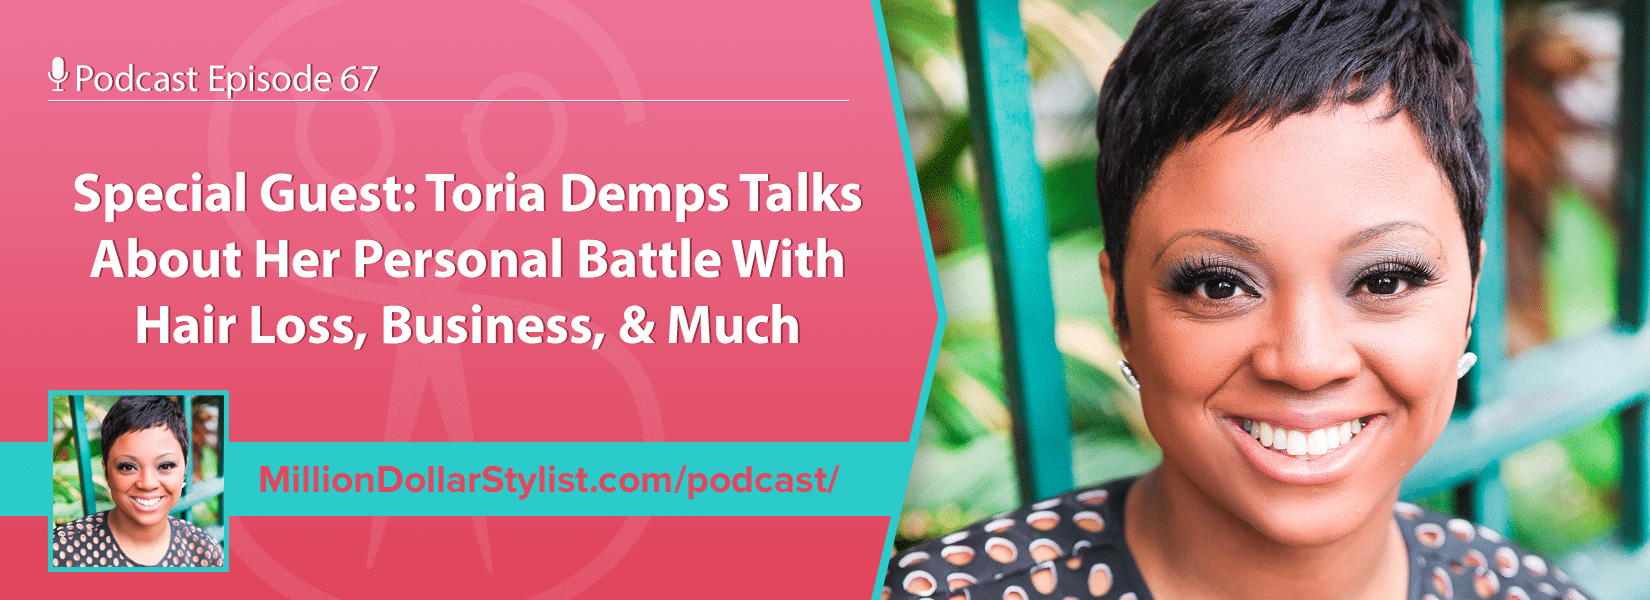 Episode 067 –  Toria Demps Talks About Her Personal Battle With Hair Loss, Business, & So Much More! 1